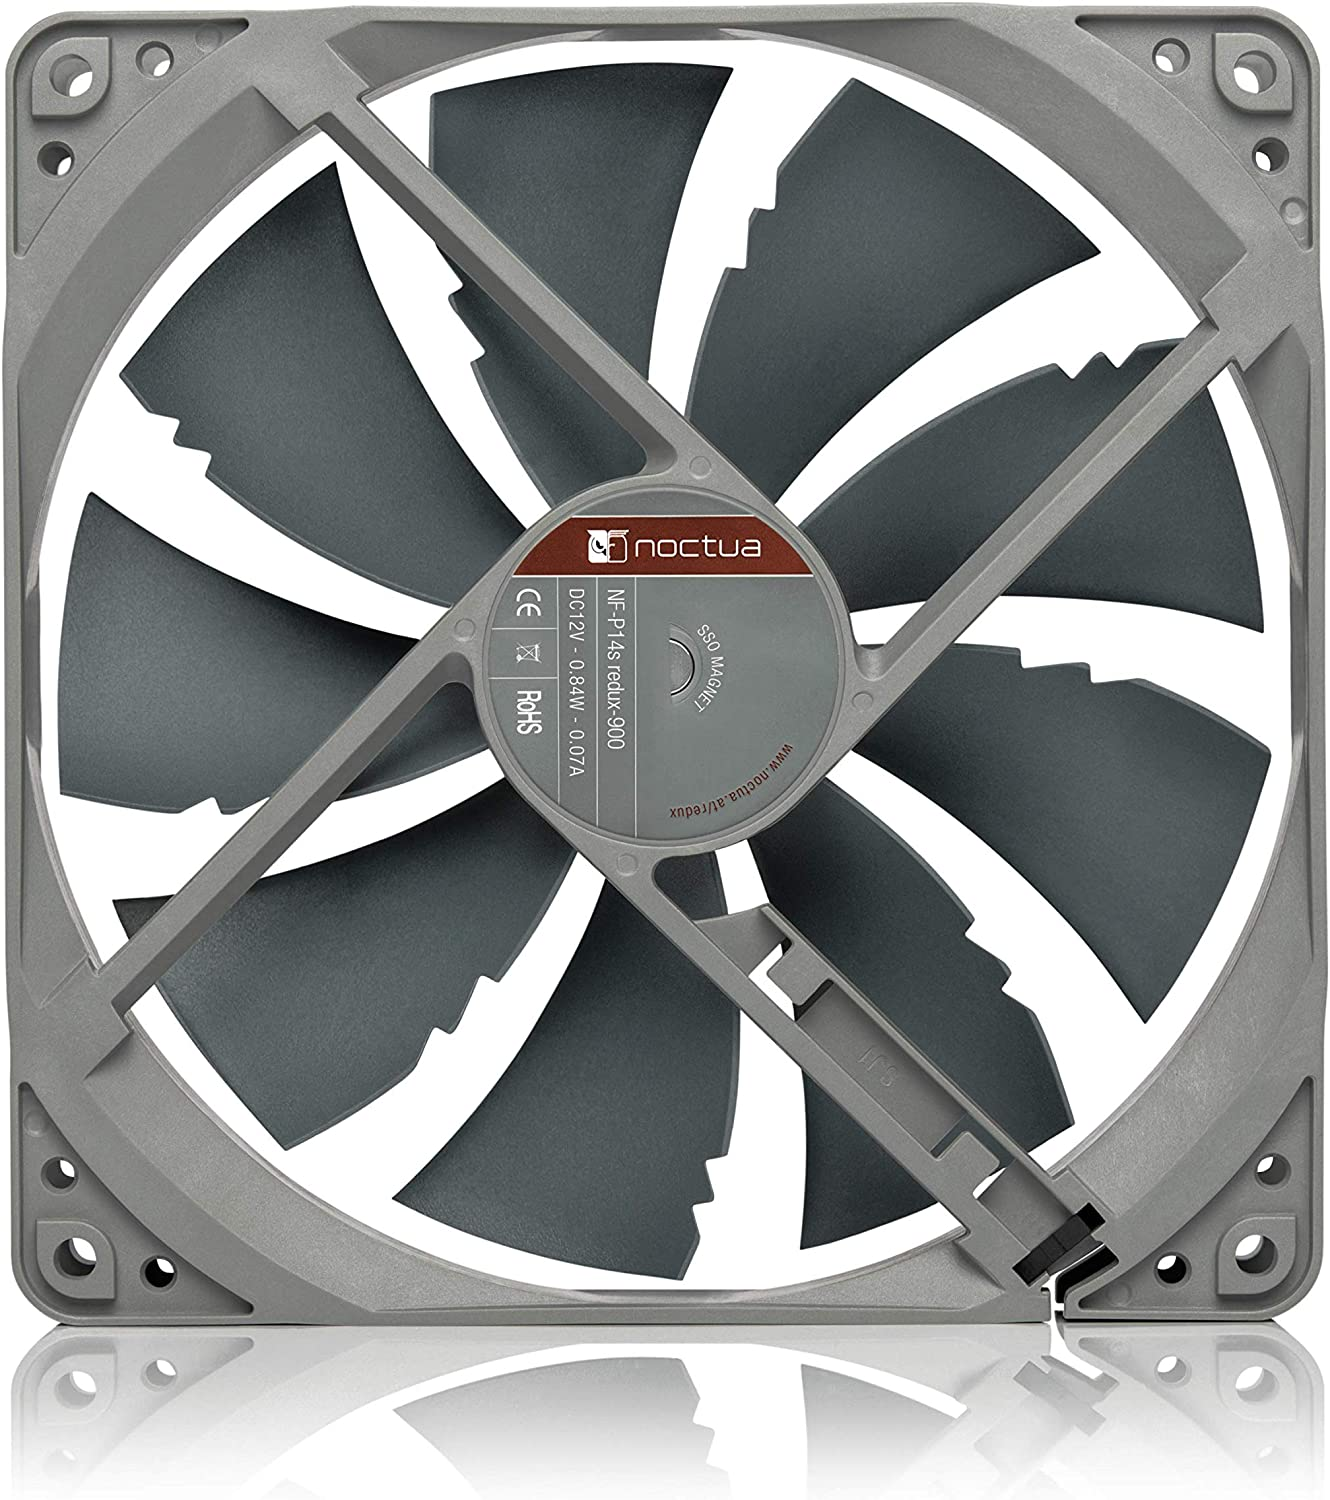 DC12V 120mm 3Pin CPU Cooling Fan Silent Cooler Radiator 1500RPM For Intel//AMD CO